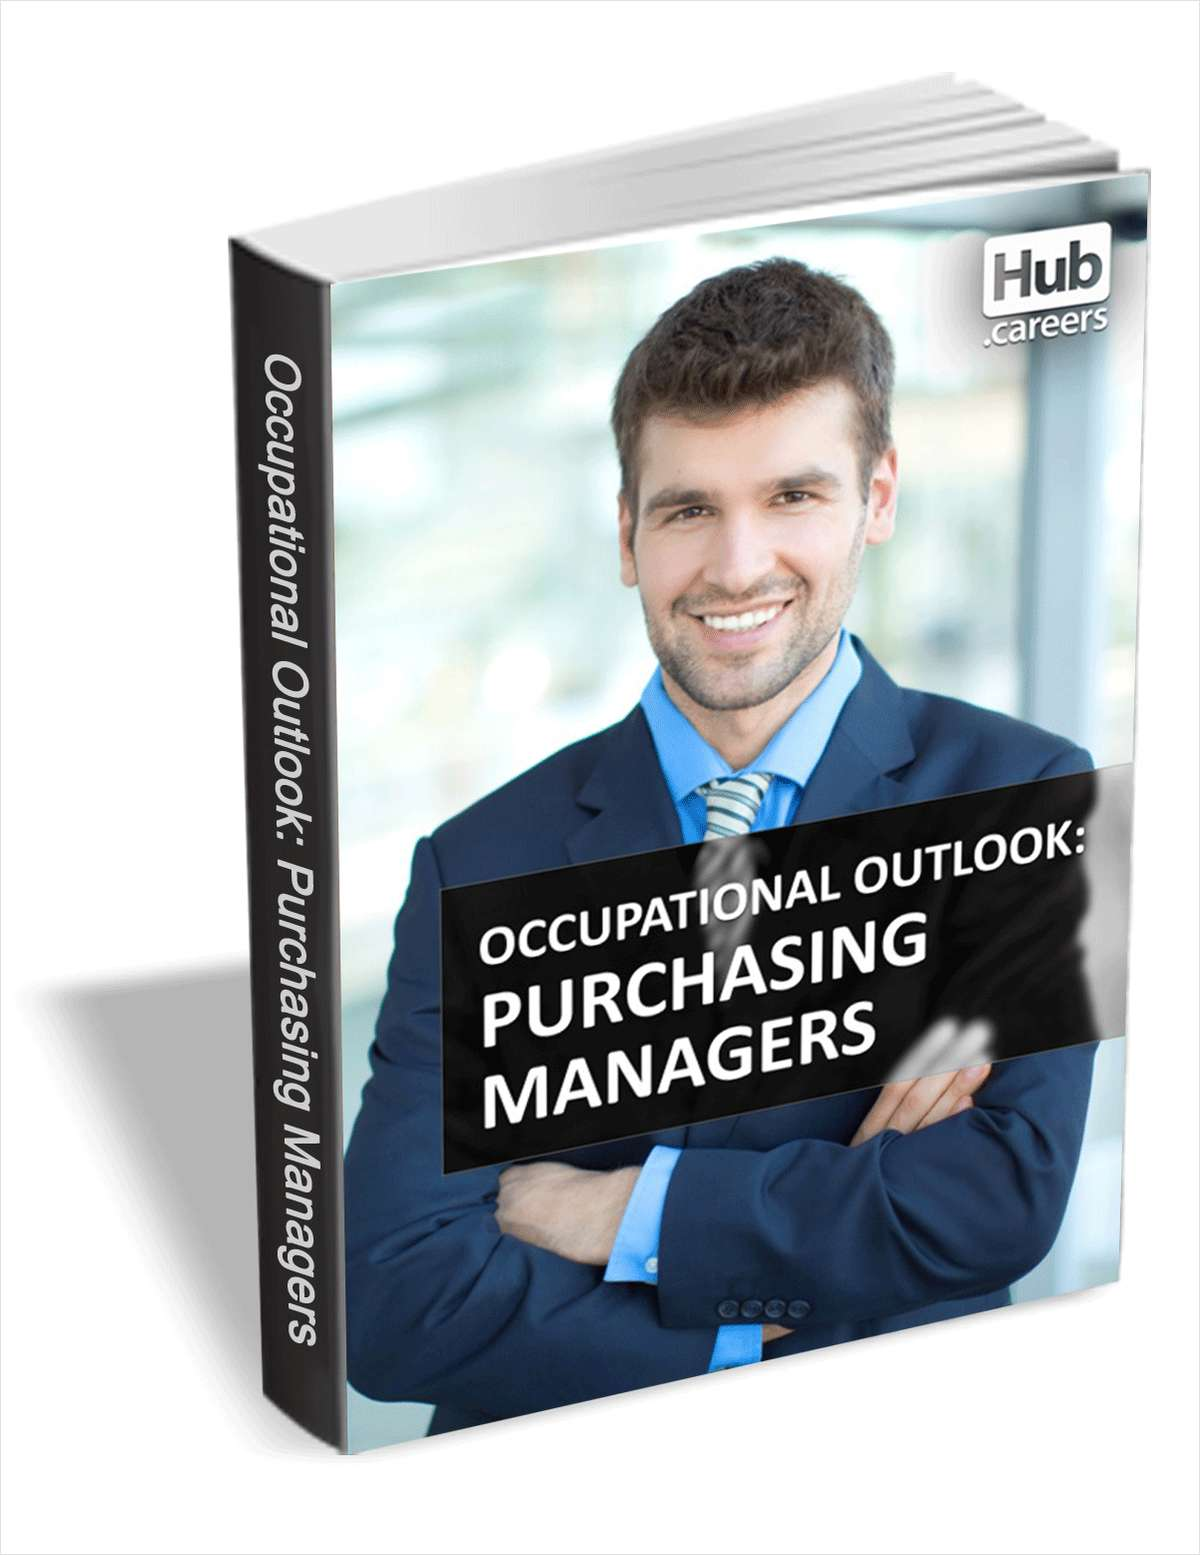 Purchasing Managers - Occupational Outlook